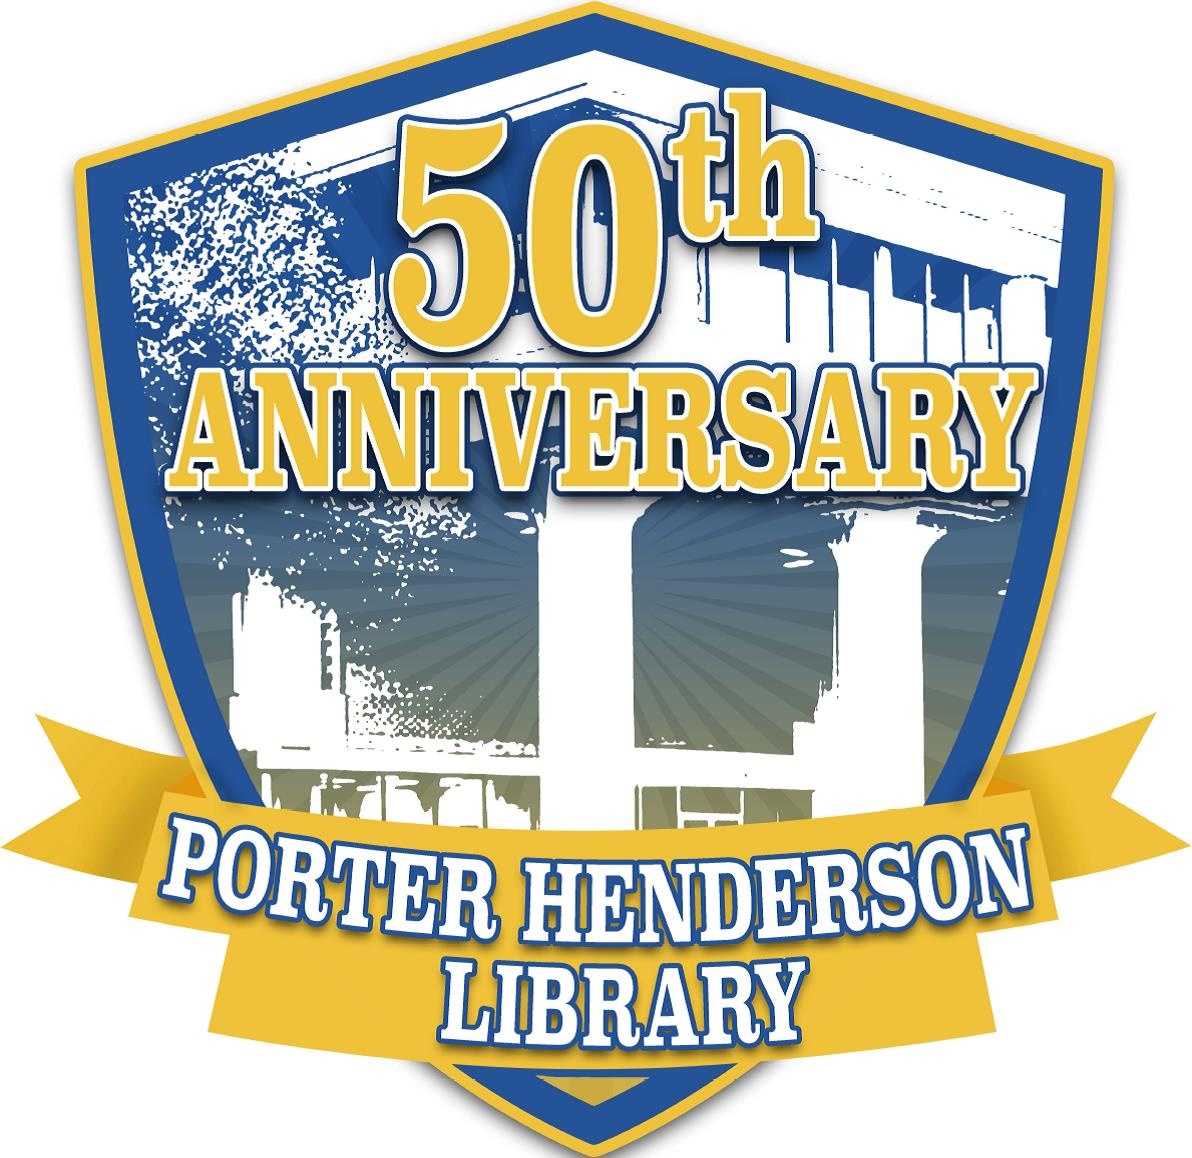 0c3ff4d5fbd Porter Henderson Library Rededication Ceremony. The Library Building's 50th  Anniversary culminates with a ...